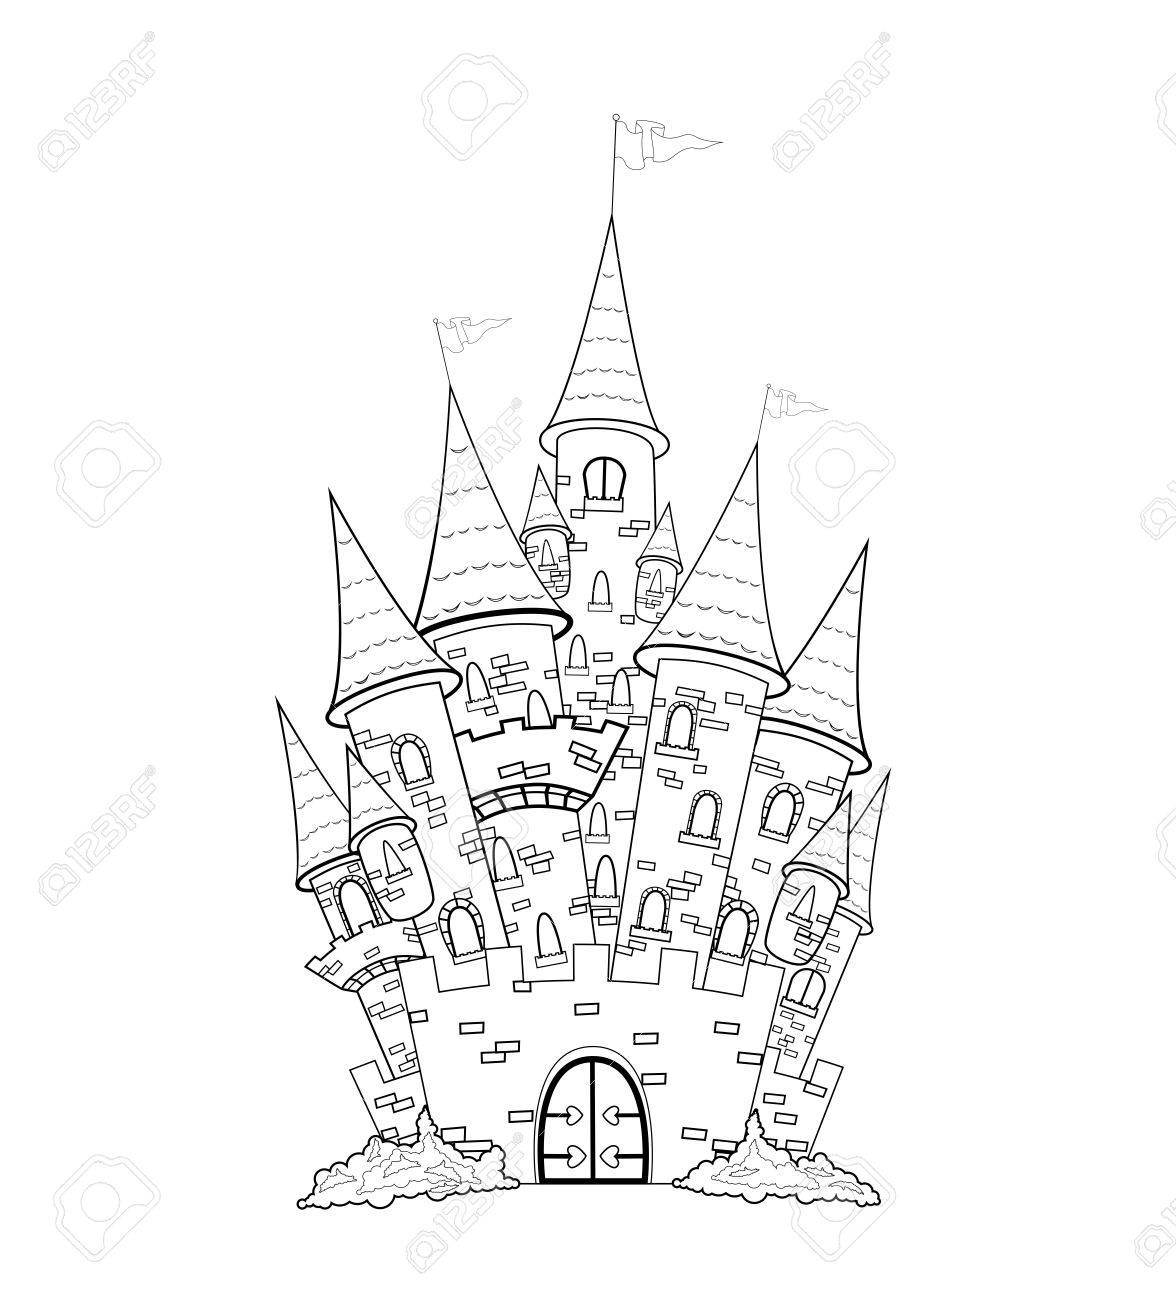 Outline Sketch Of The Castle The Outlines Of The Castle On A